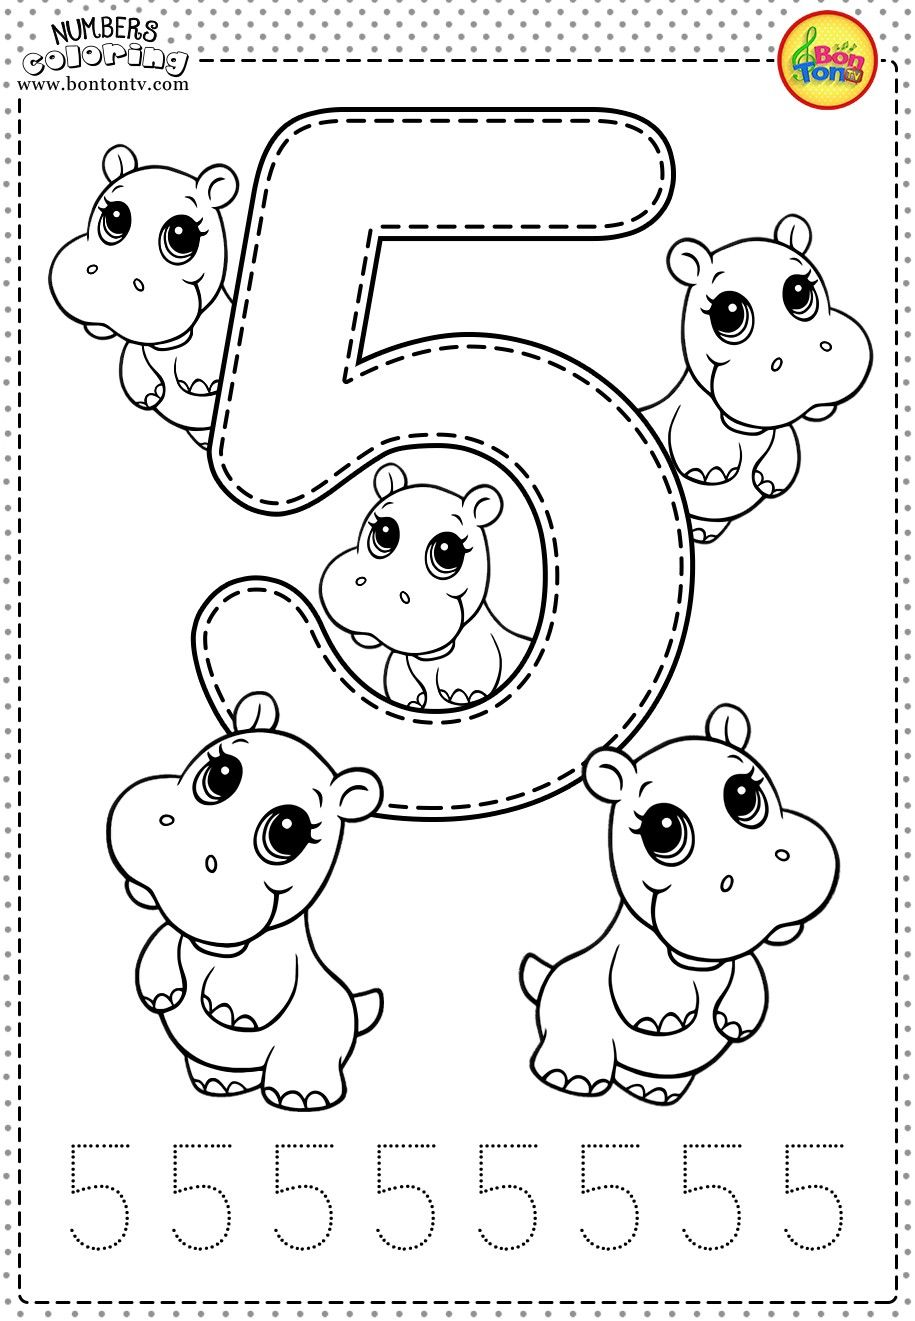 4 Tracing Pages for Preschool Numbers Number 5 Preschool